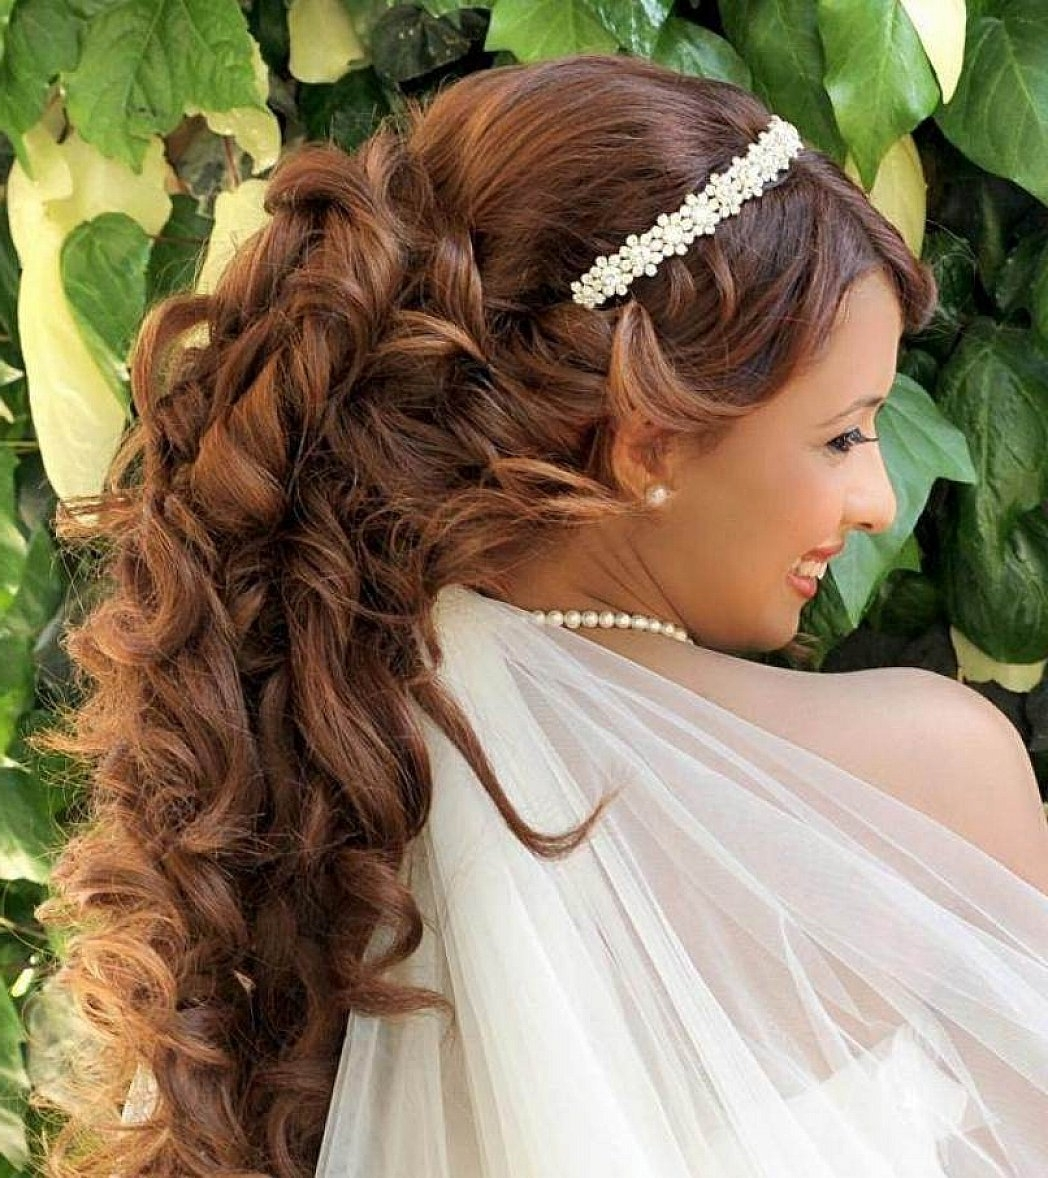 2018 Wedding Hairstyles For Long Hair Down With Tiara Intended For Wedding Hairstyles For Long Hair Half Up With Tiara (10) (View 4 of 15)